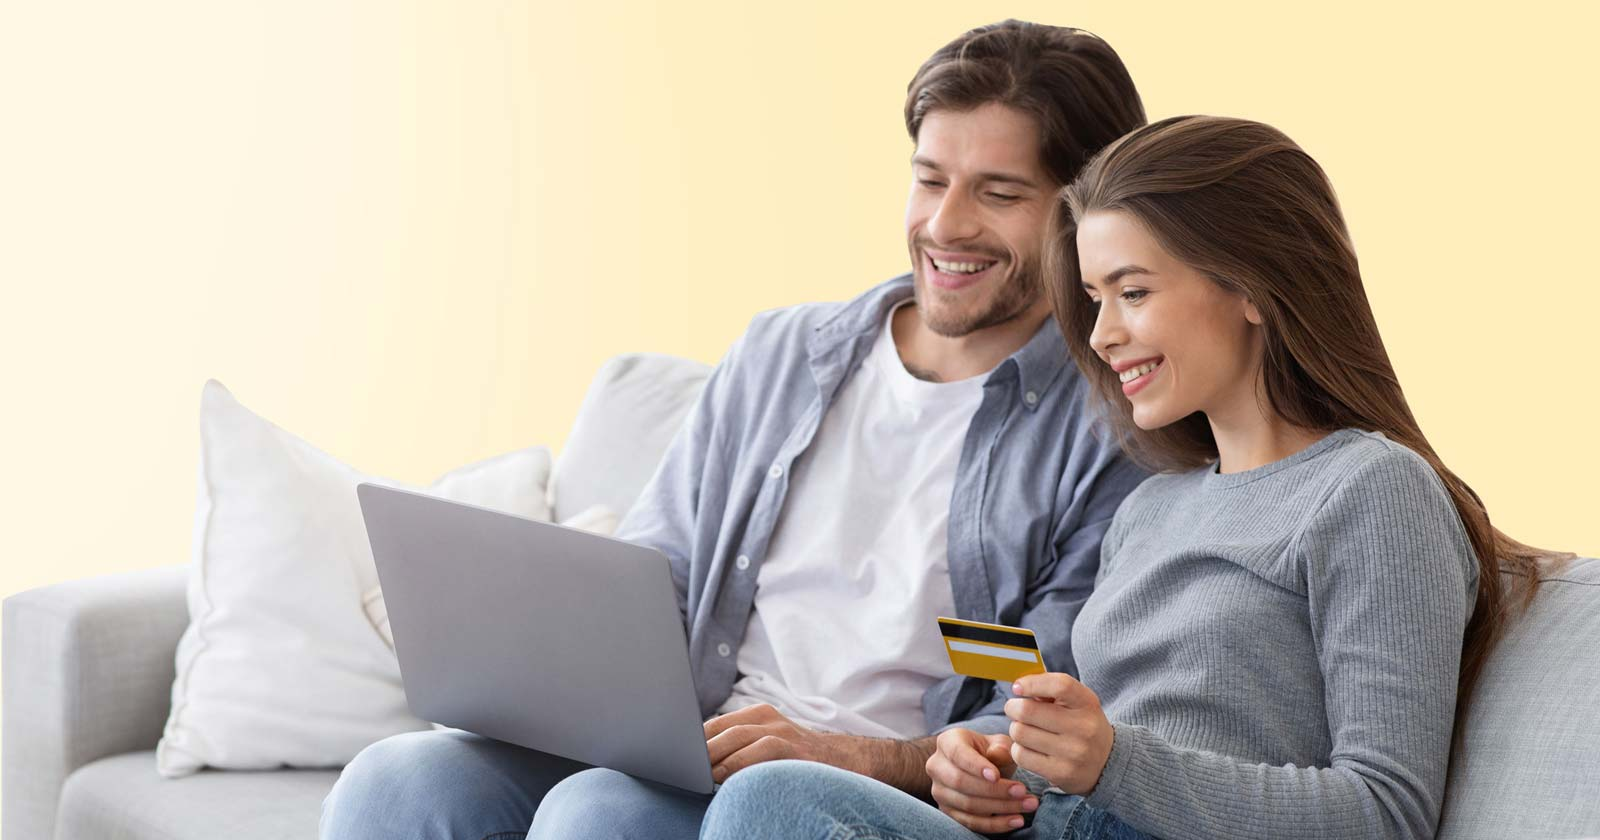 Blog Is life insurance worth purchasing if you're in your 20s and 30s?